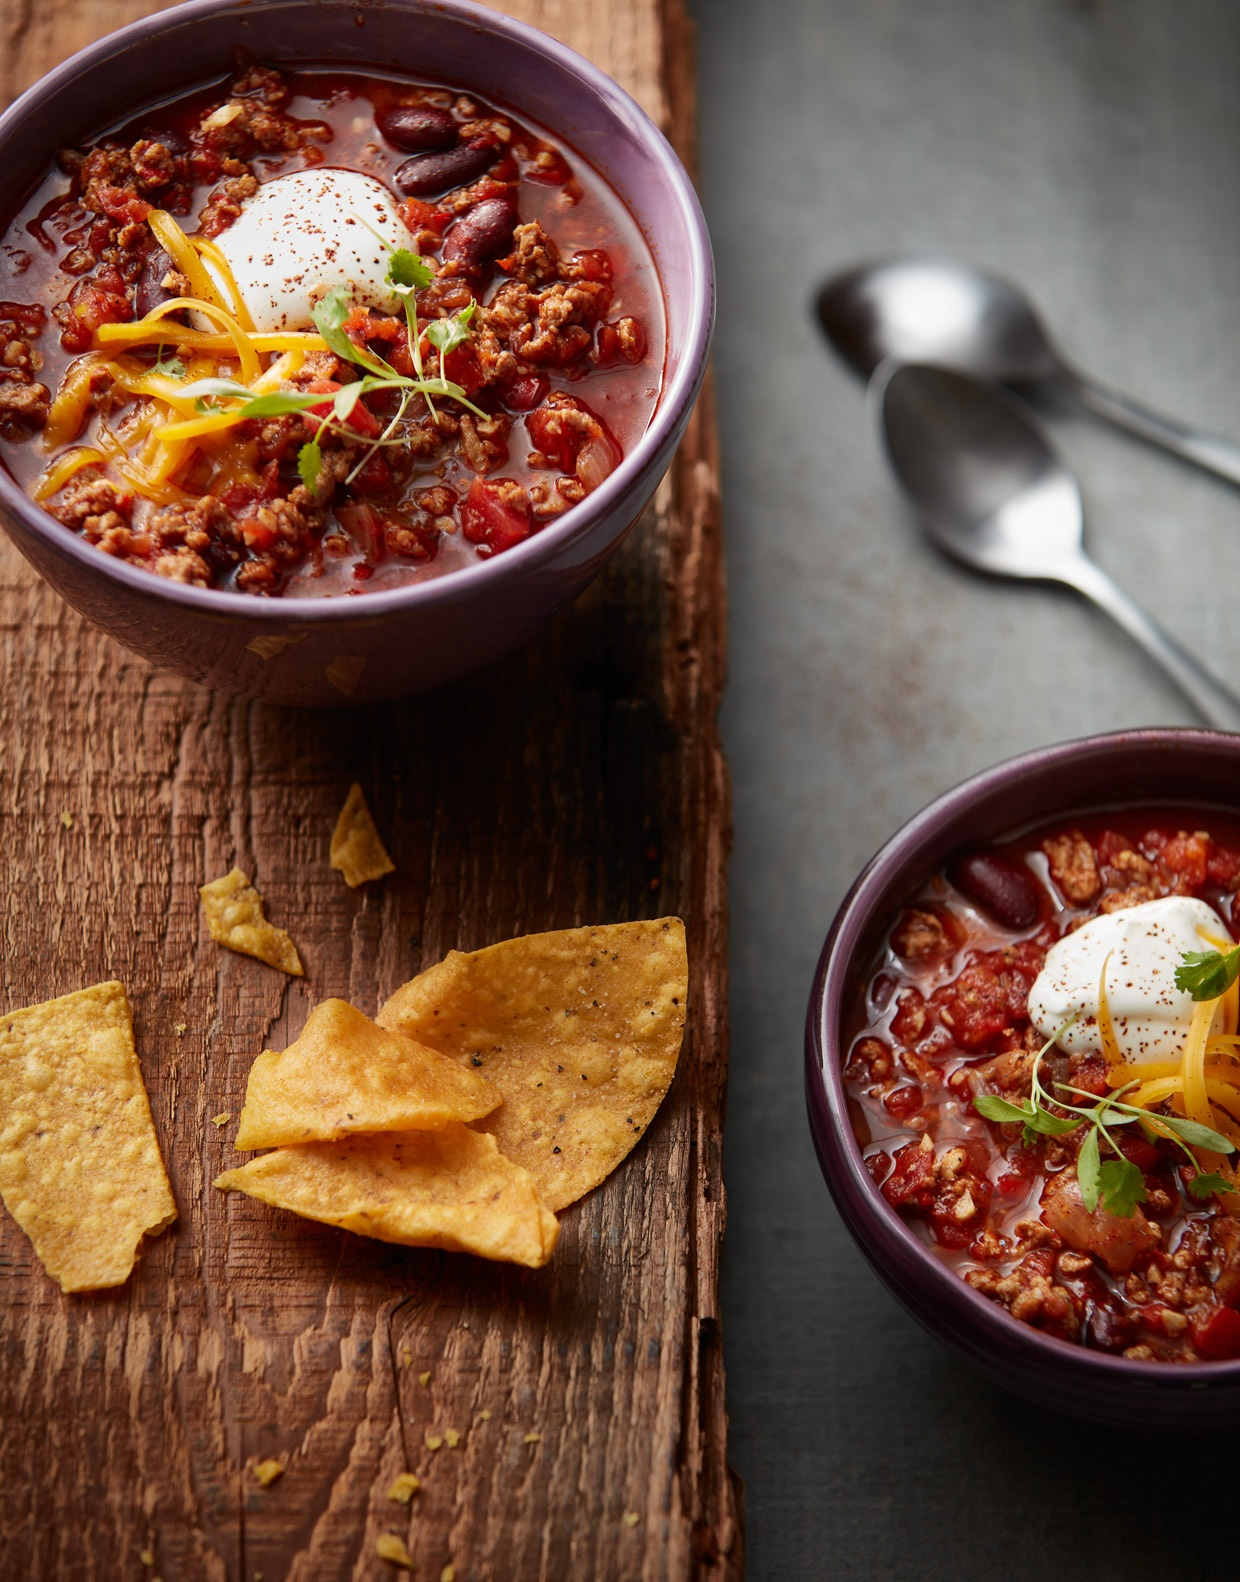 T-MOBILE | Slow Cooker Sunday Cookbook - Photography by Jonathan Bishop & Kristian Marson